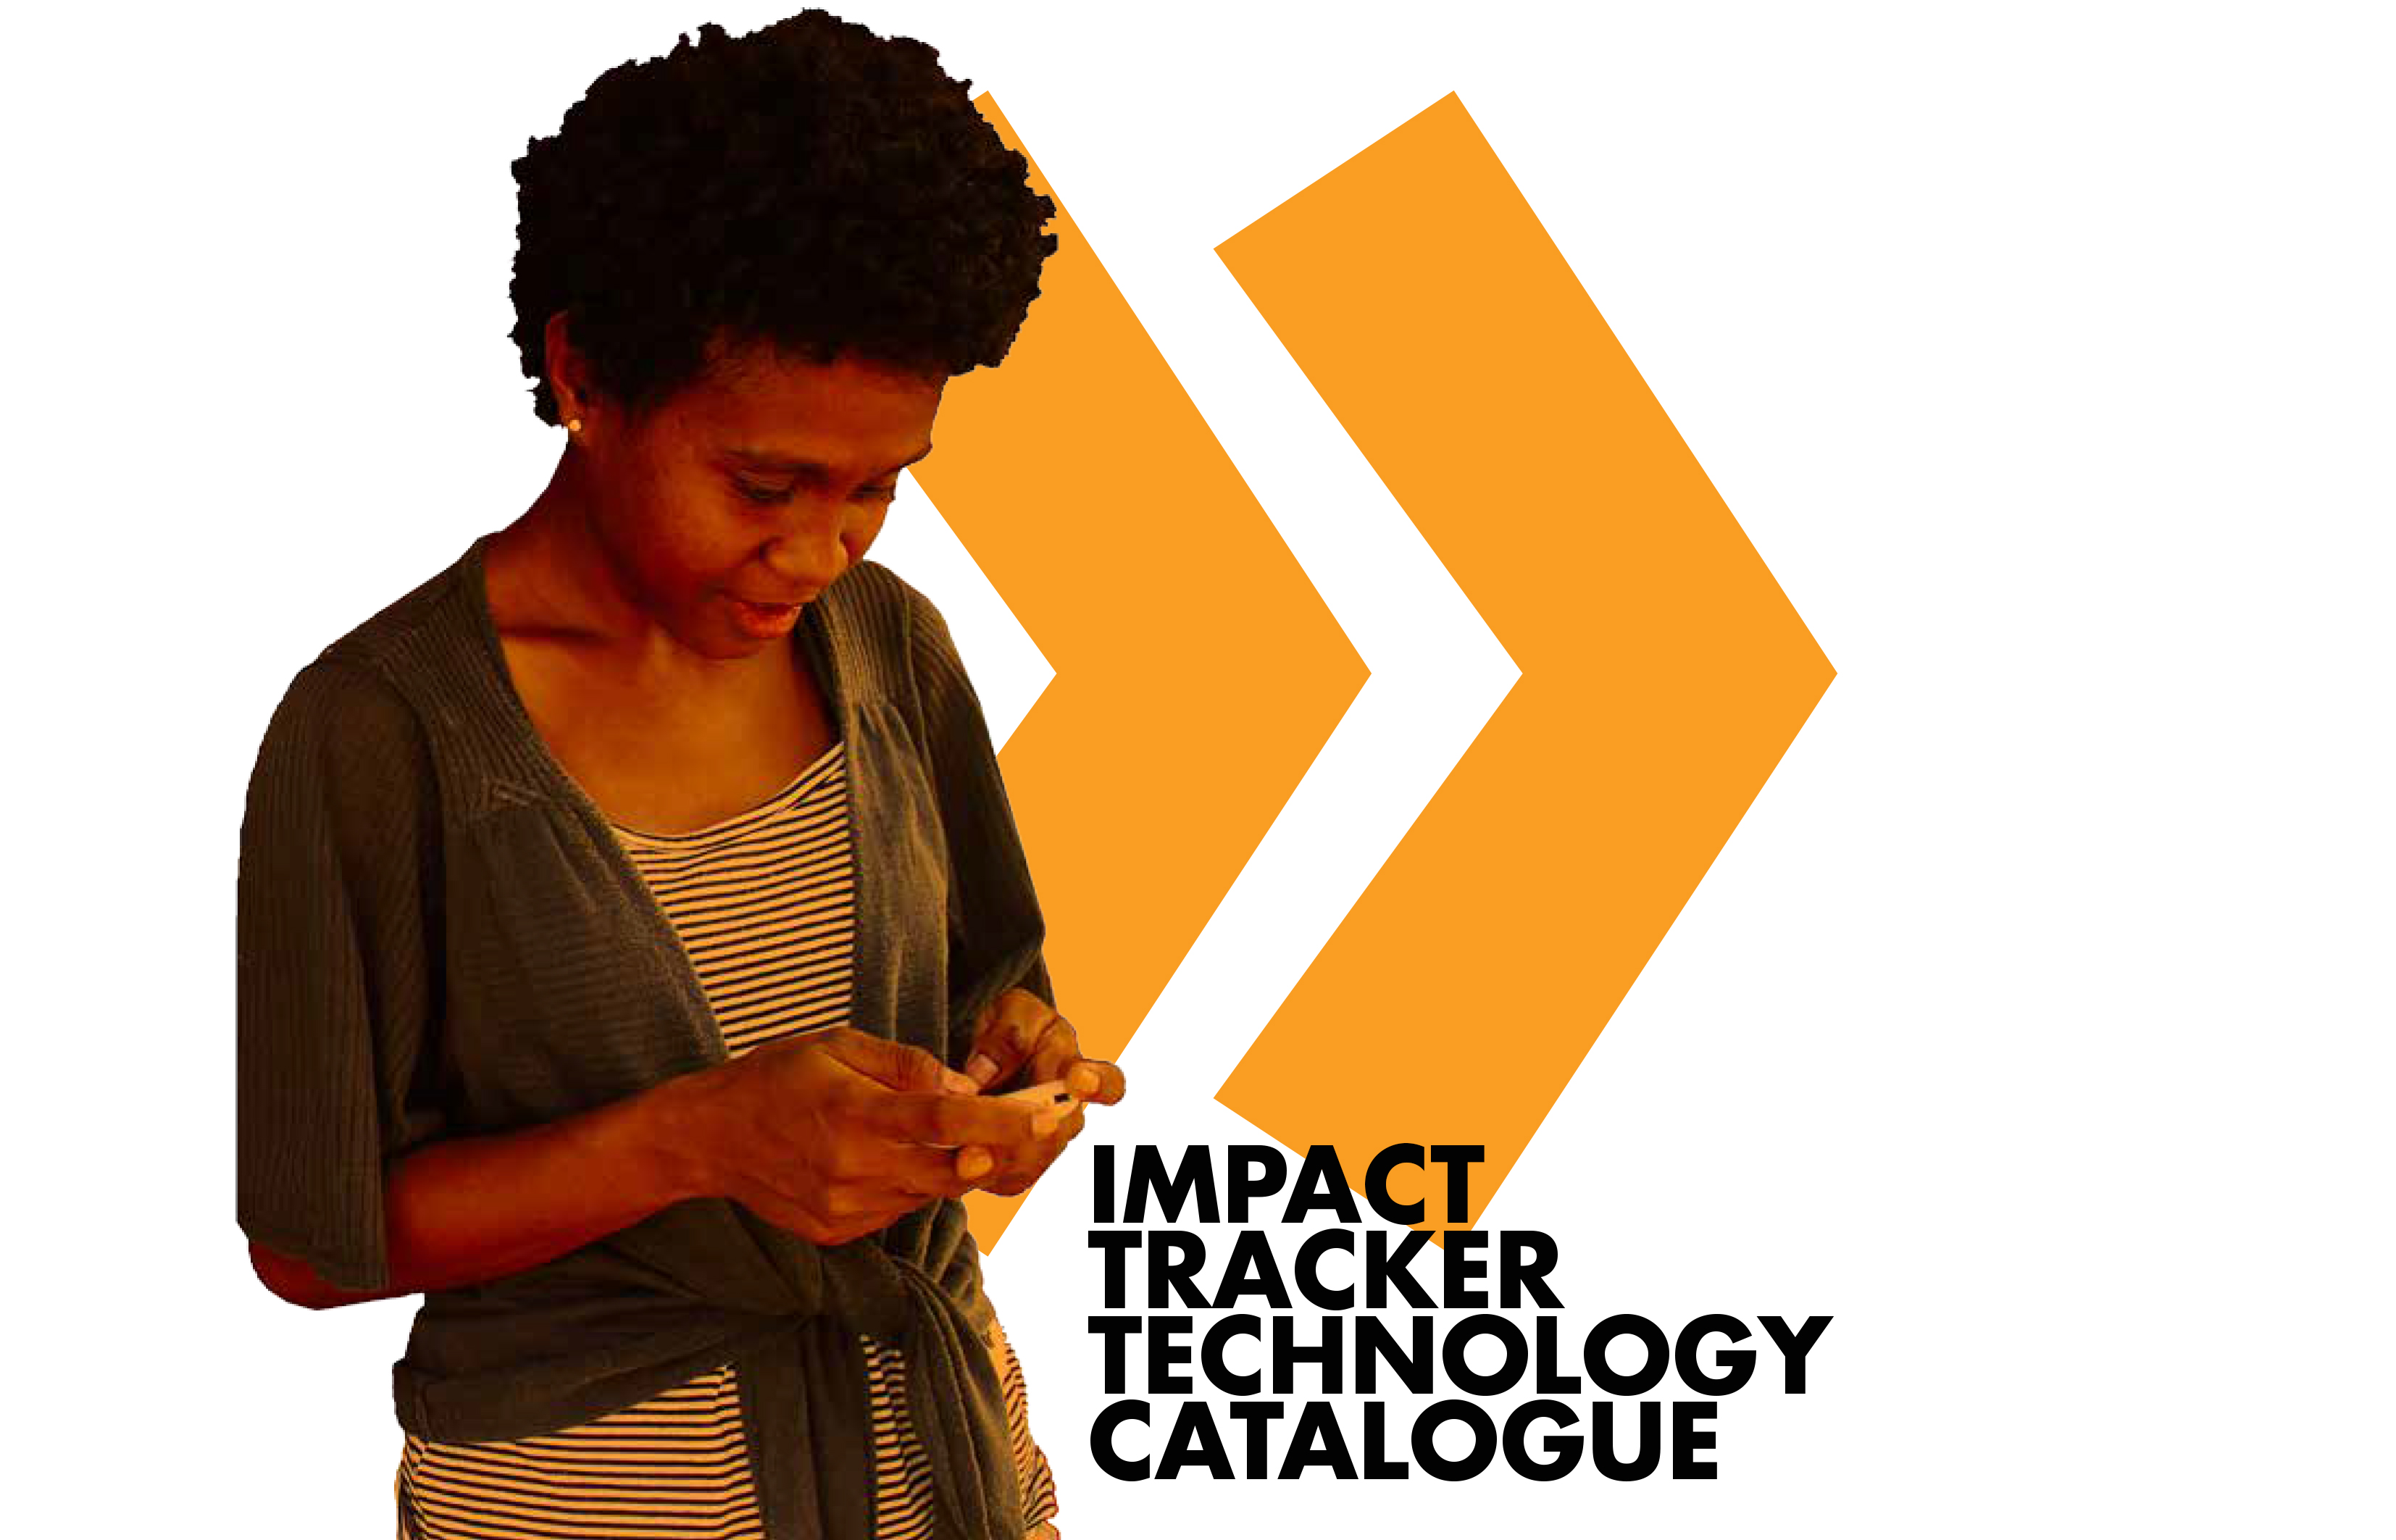 Impact Tracker Technology Catalogue for Social Enterprises